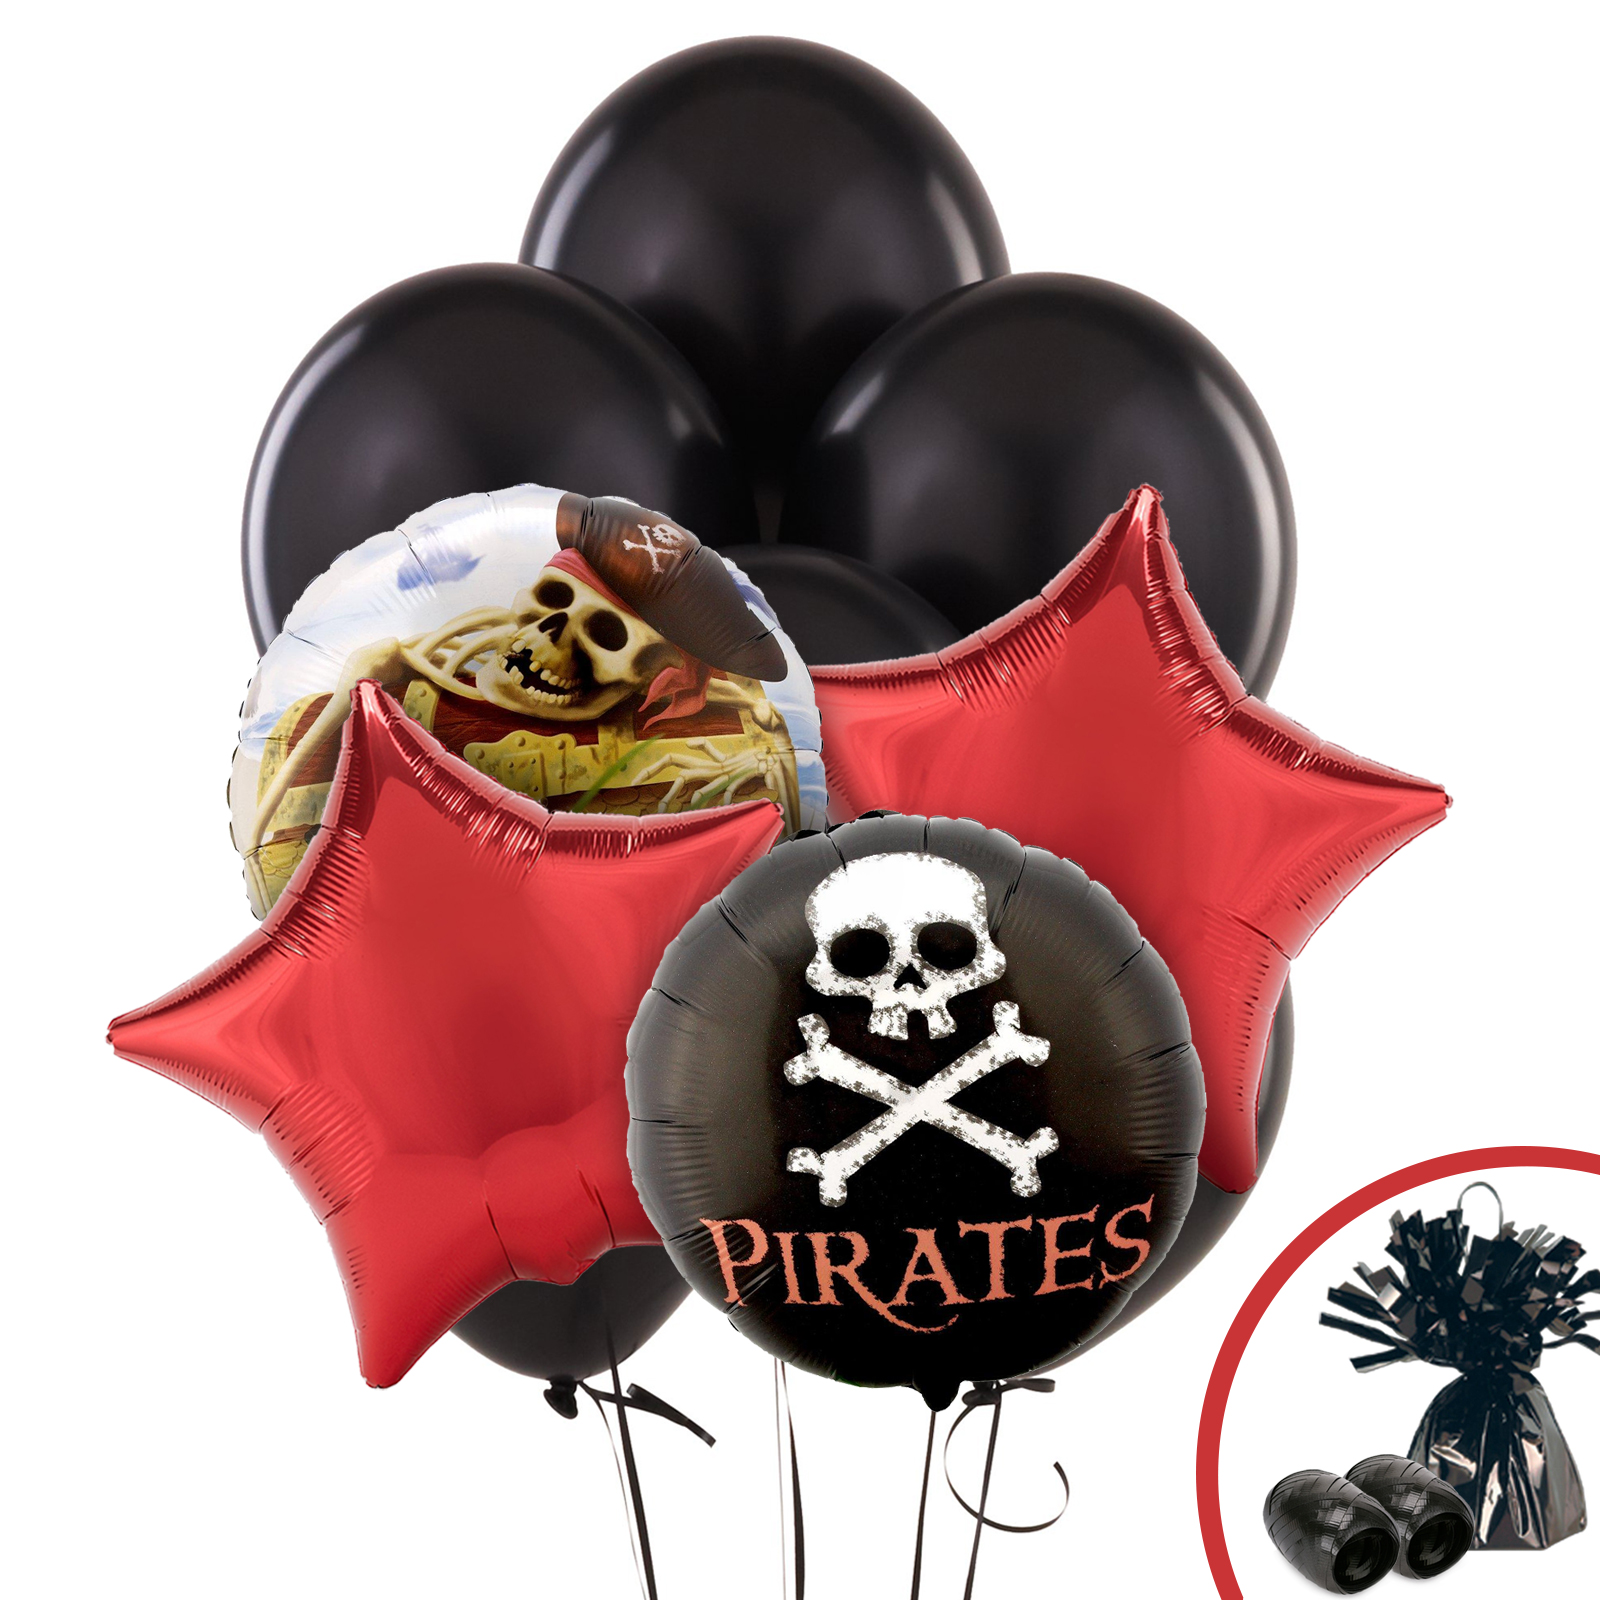 Pirate Party Balloon Kit - Party Supplies